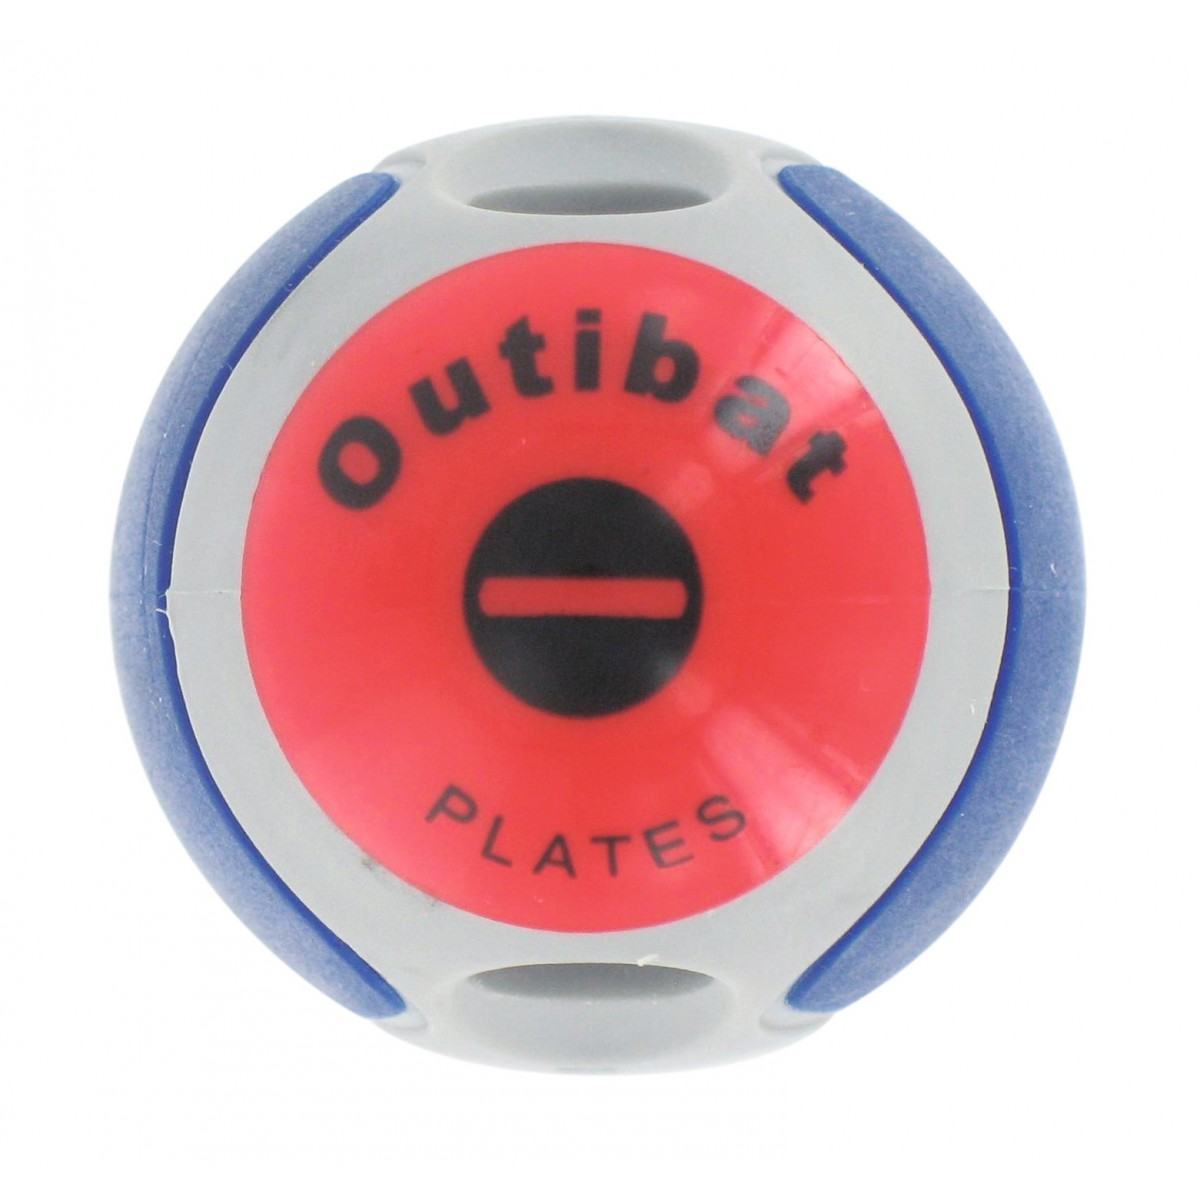 Tournevis lame plate Outibat - 5 x 100 mm